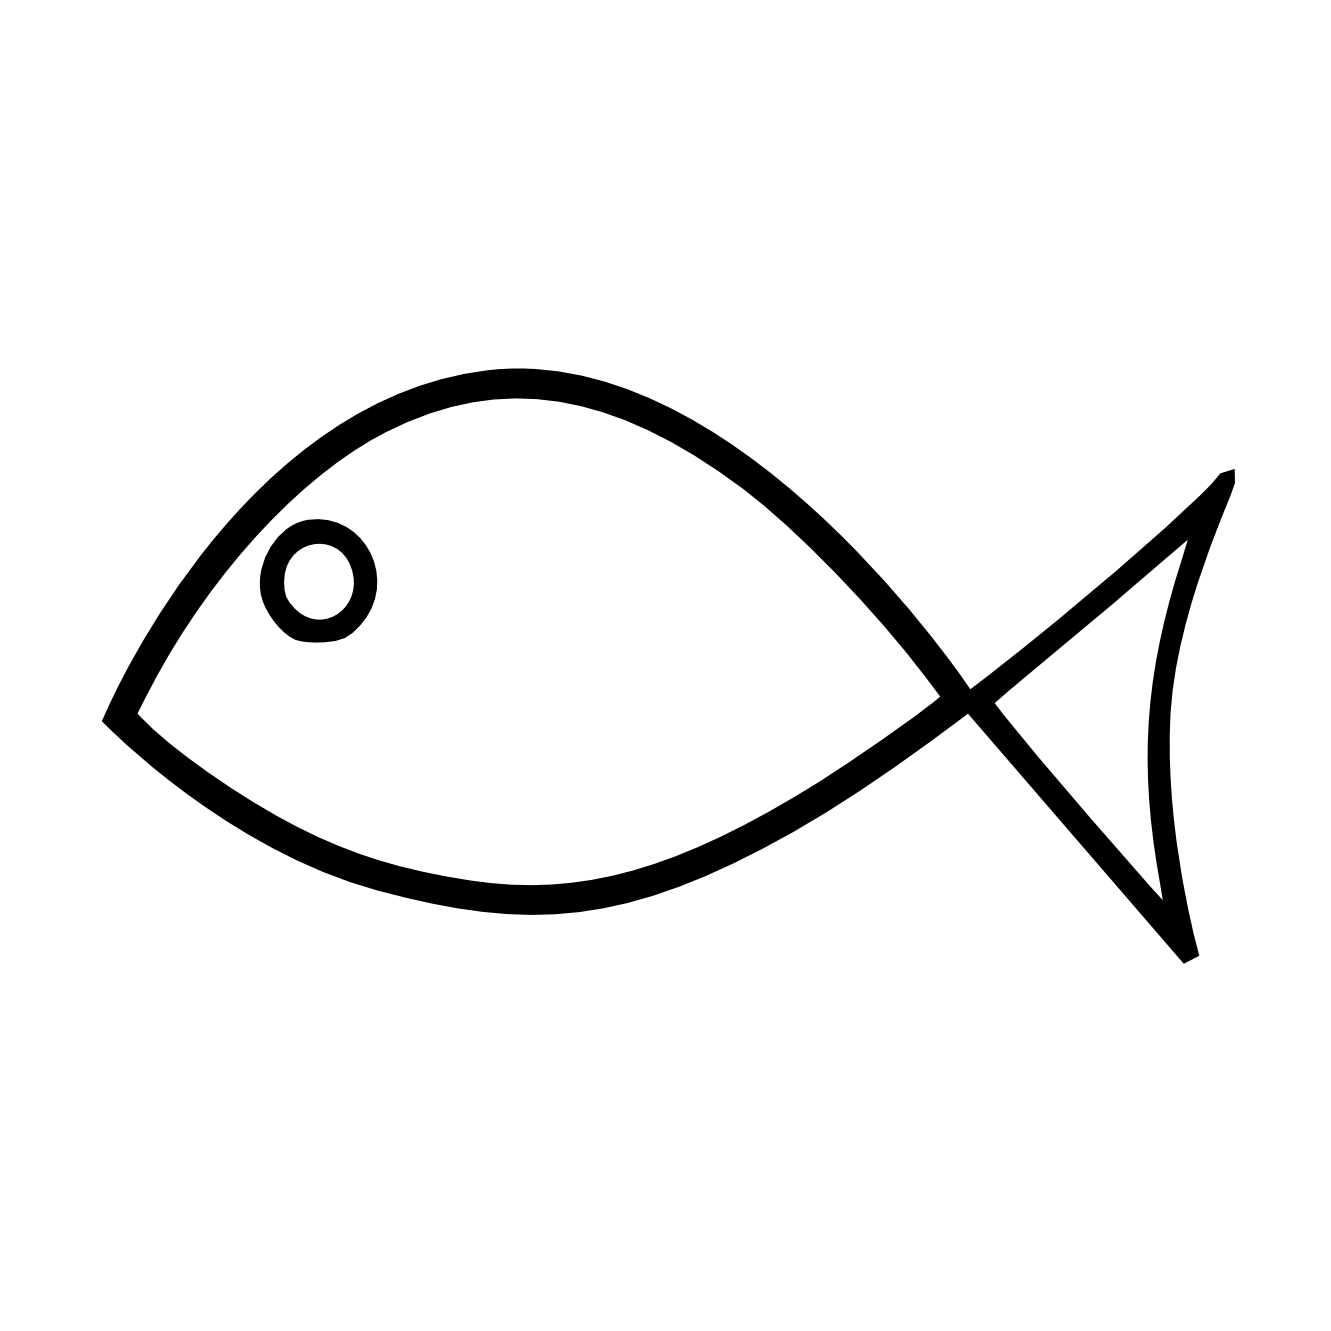 Free Image Of A Fish, Download Free Clip Art, Free Clip Art.